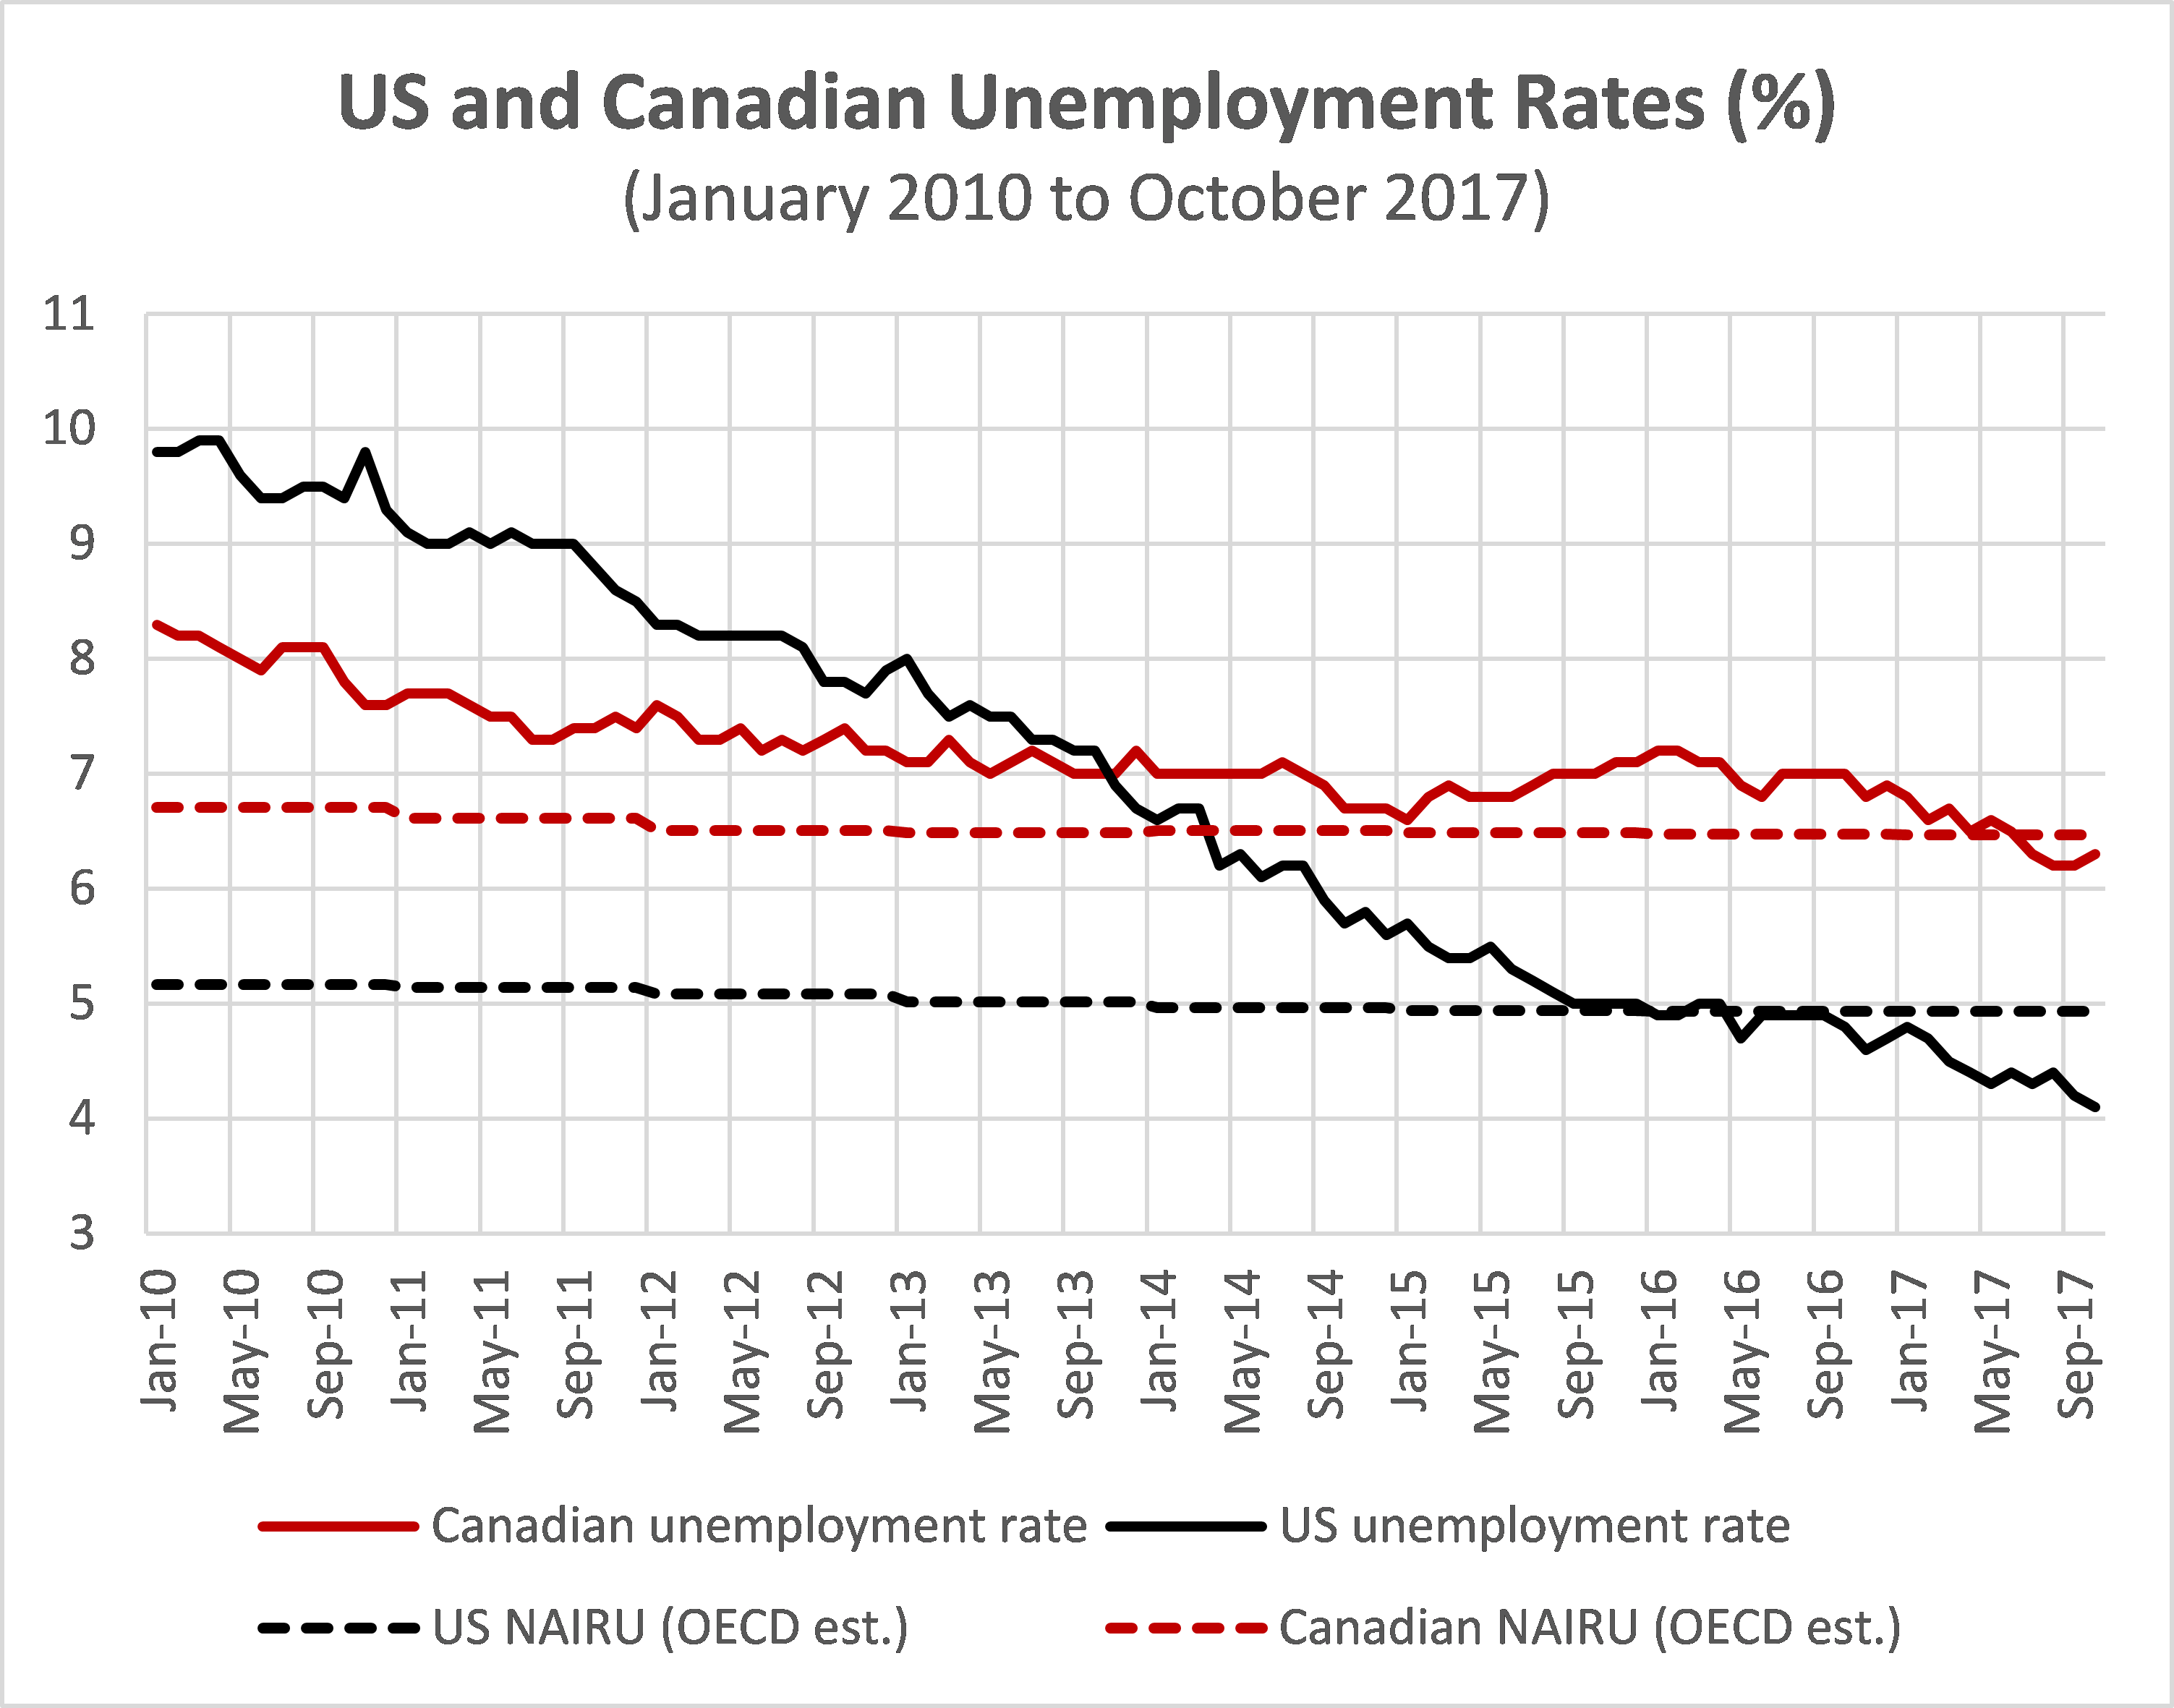 U.S. and Canadian Unemployment Rates